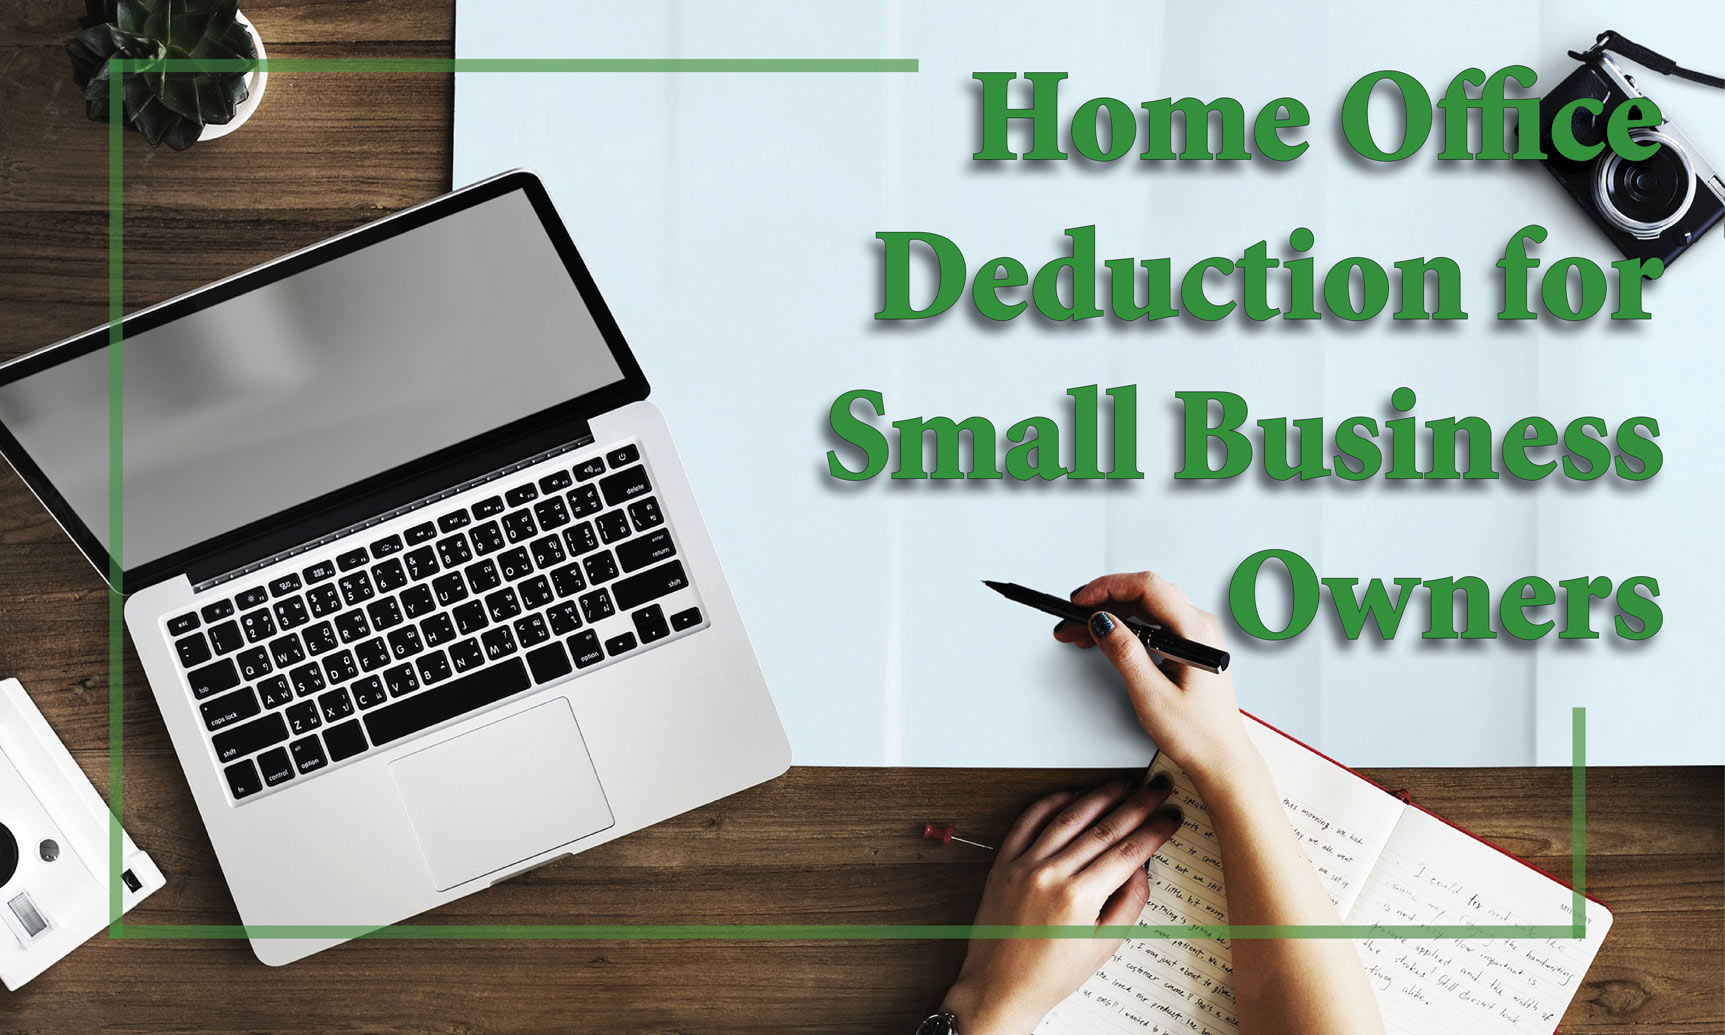 Home Office Deduction Benefits eligible small business owners